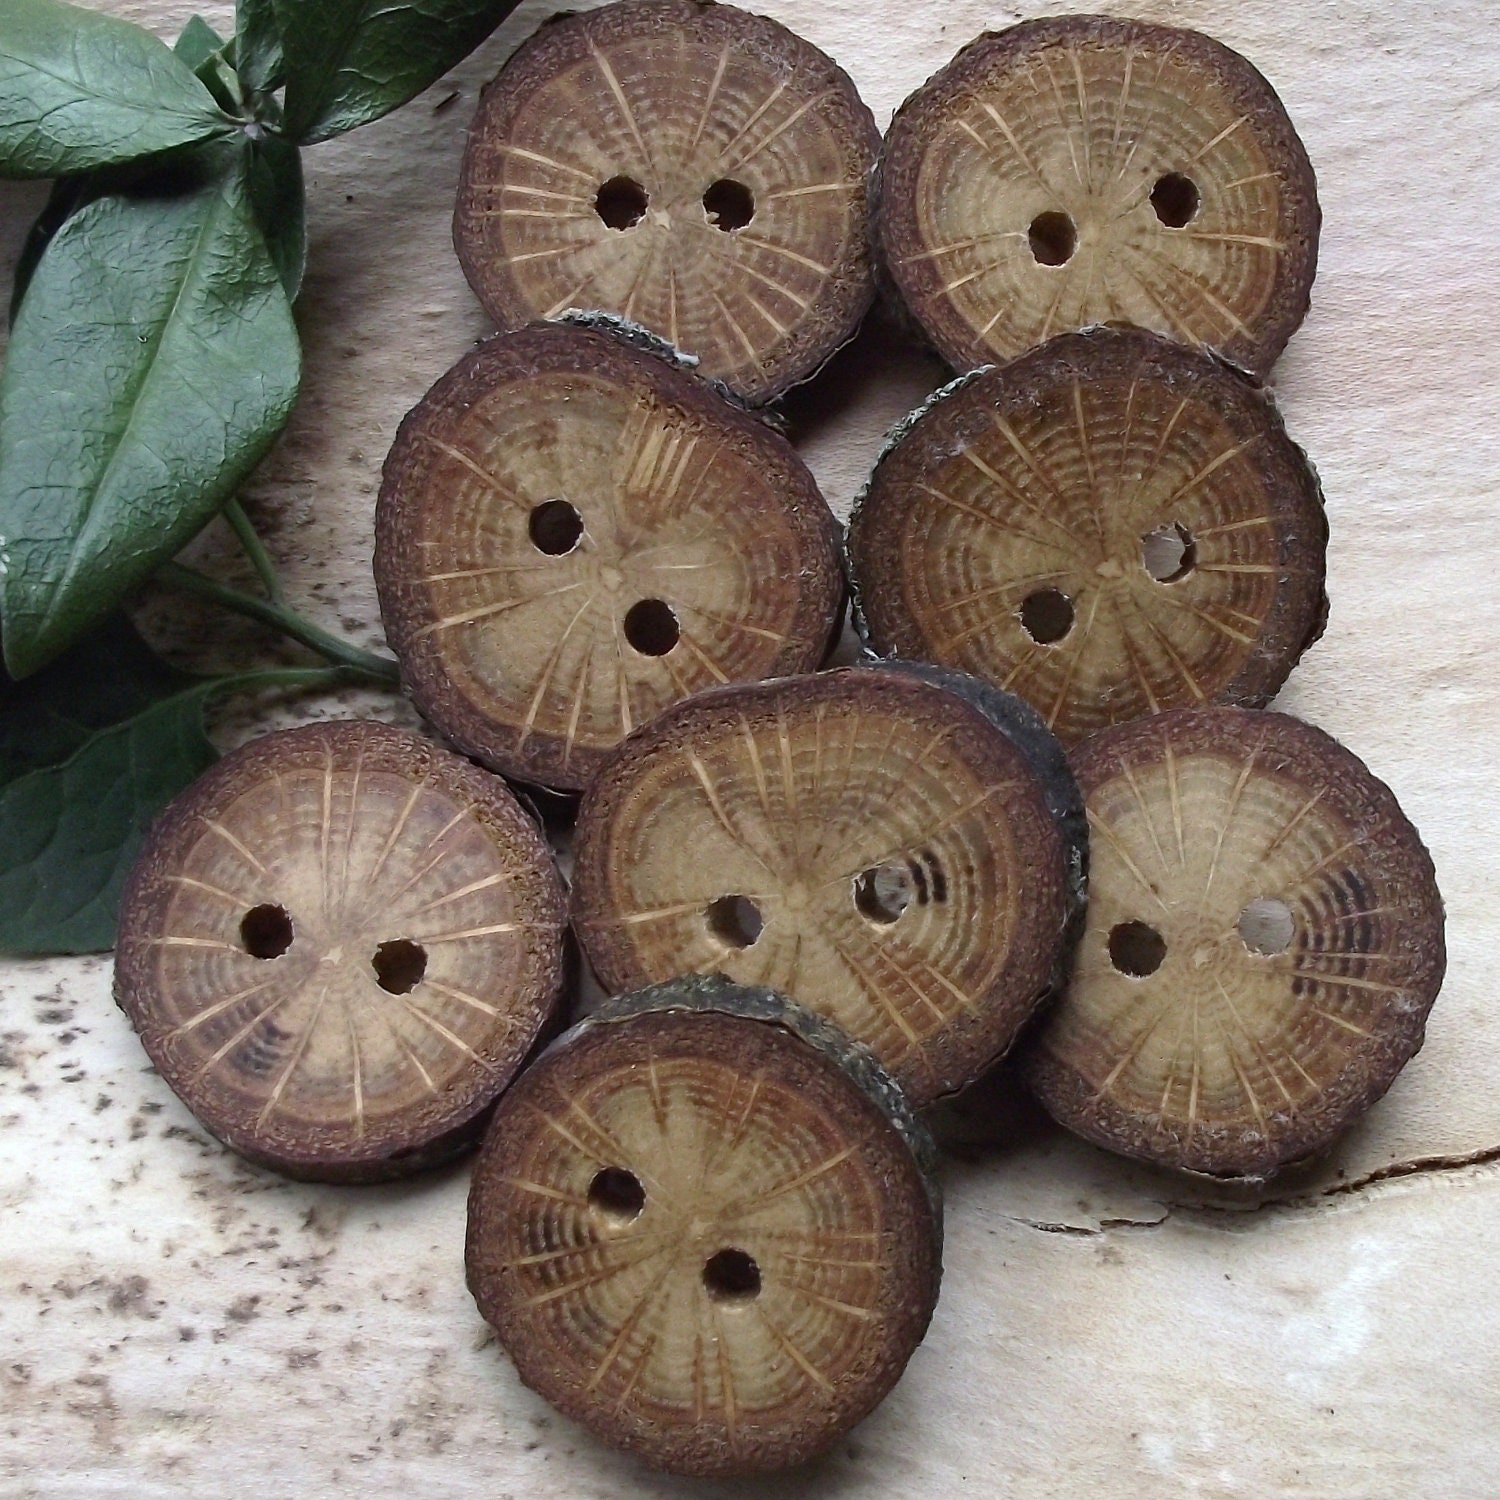 Small Wood Buttons - 8 Ohio Oak Wooden Tree Branch Buttons with Bark - 1 1/4 inches, 2 Holes, For Knitting, Journals, Pillows, Purses